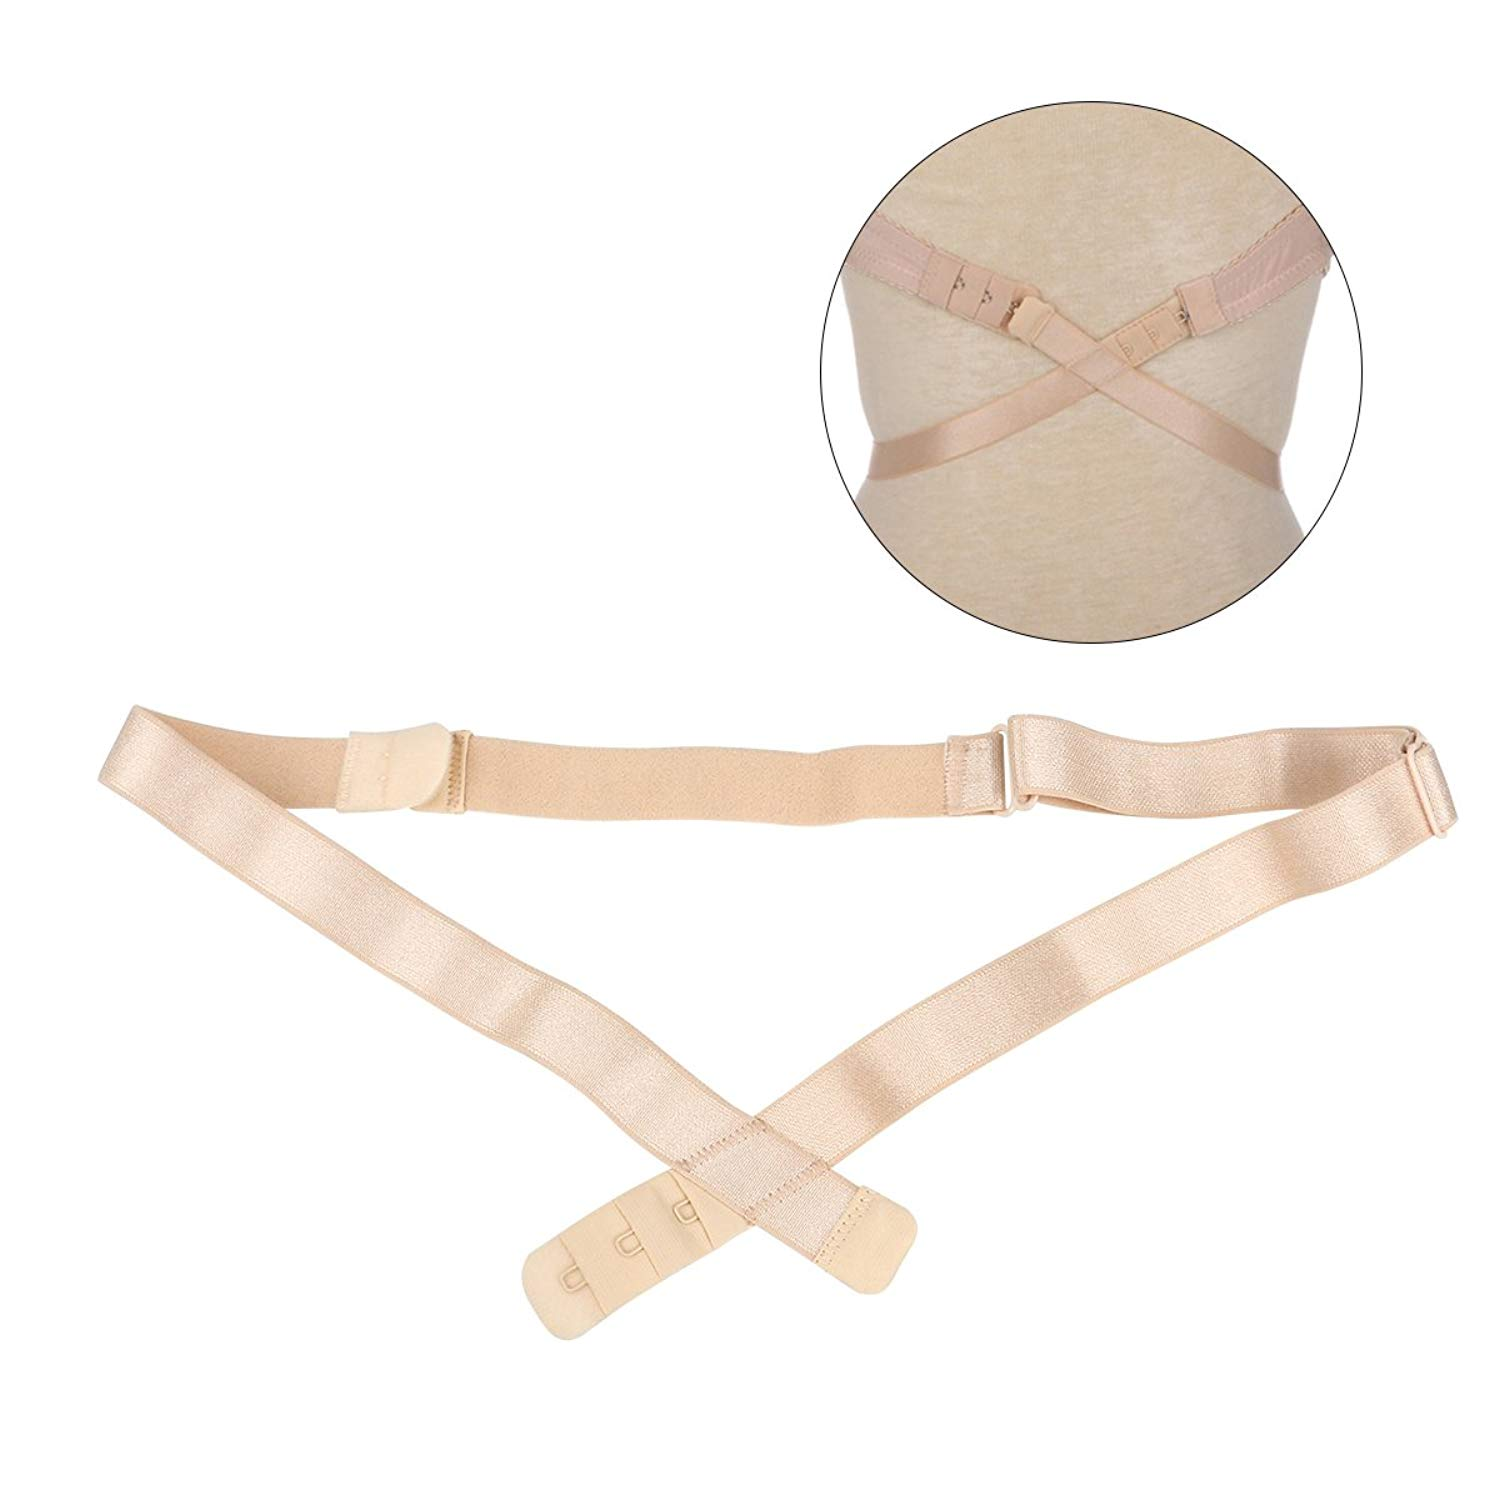 8a040a76bf35c Tinksky Low Back Bra Strap Converters Extender with 3 Hooks For V-Neck  Backless Dress